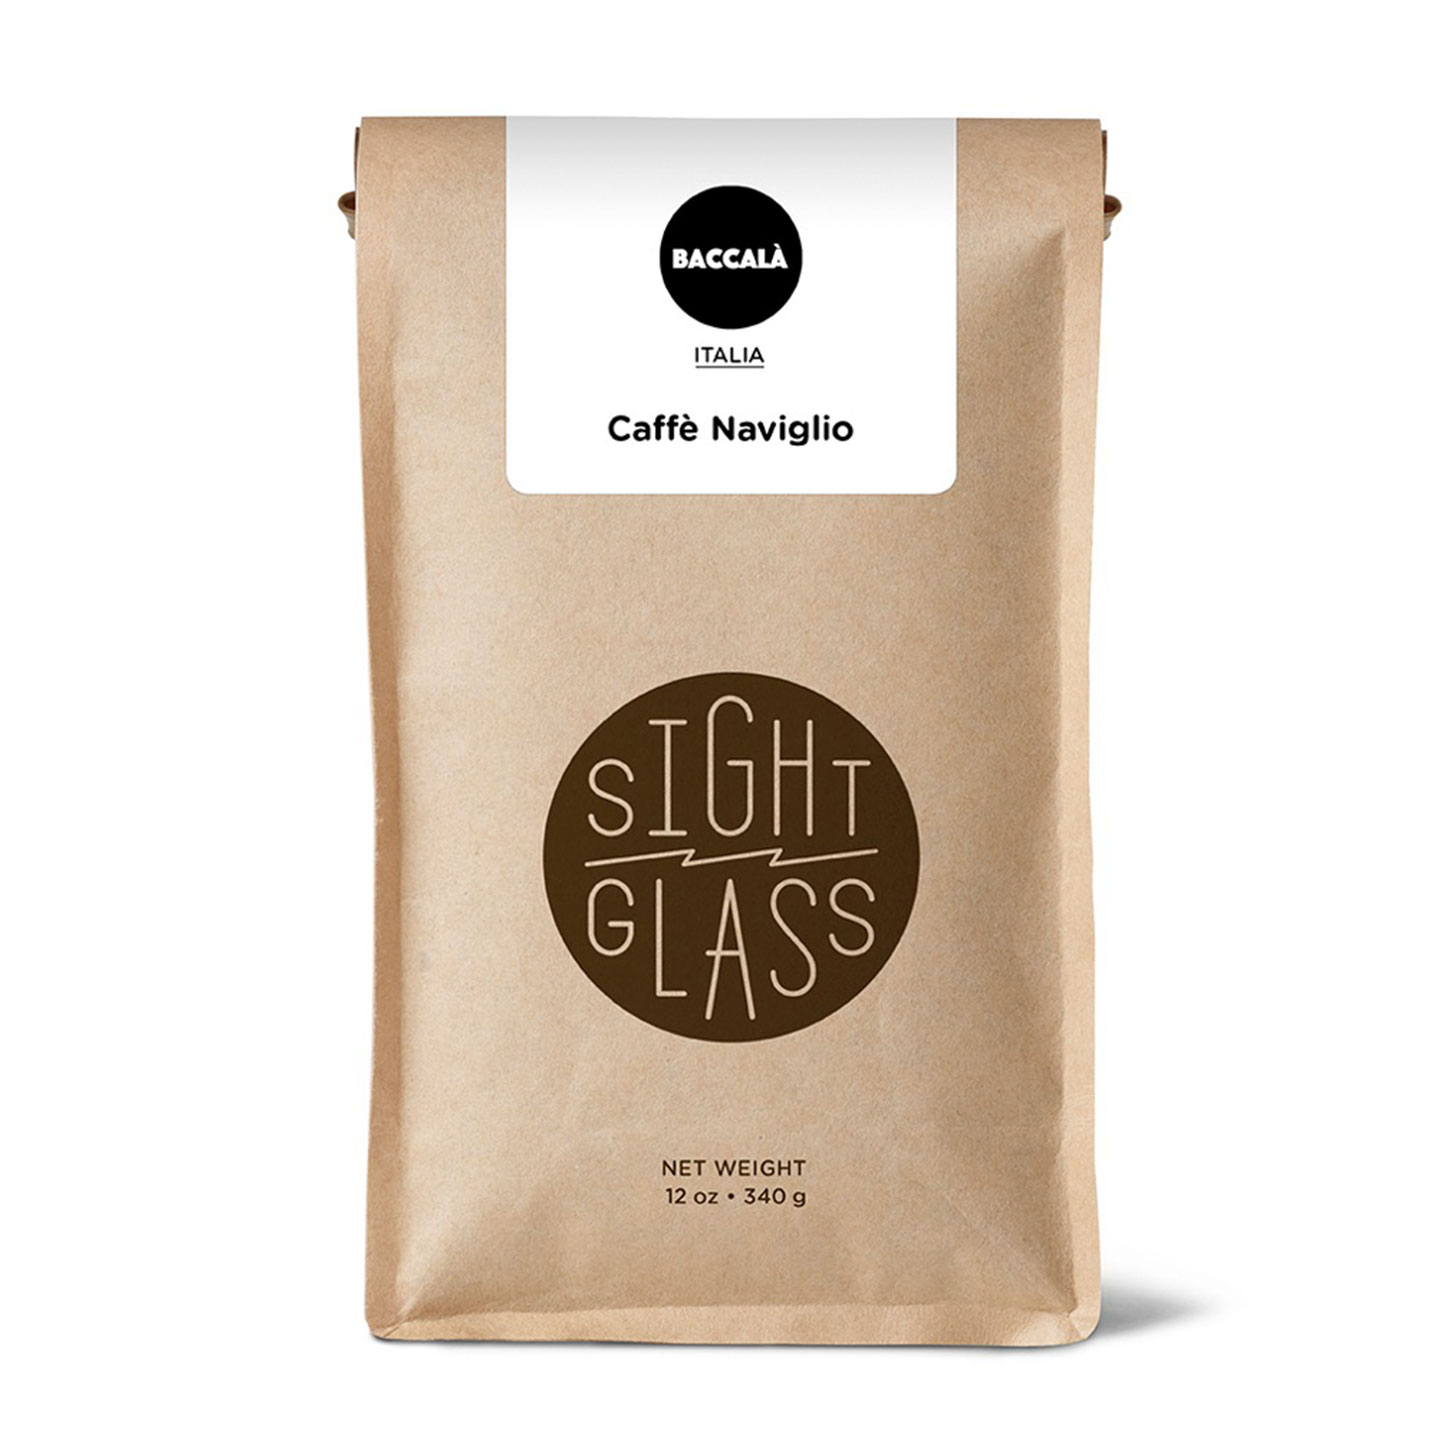 Caffè Naviglio Espresso - 12oz Bag - Roasted by Sightglass Coffee for Baccala